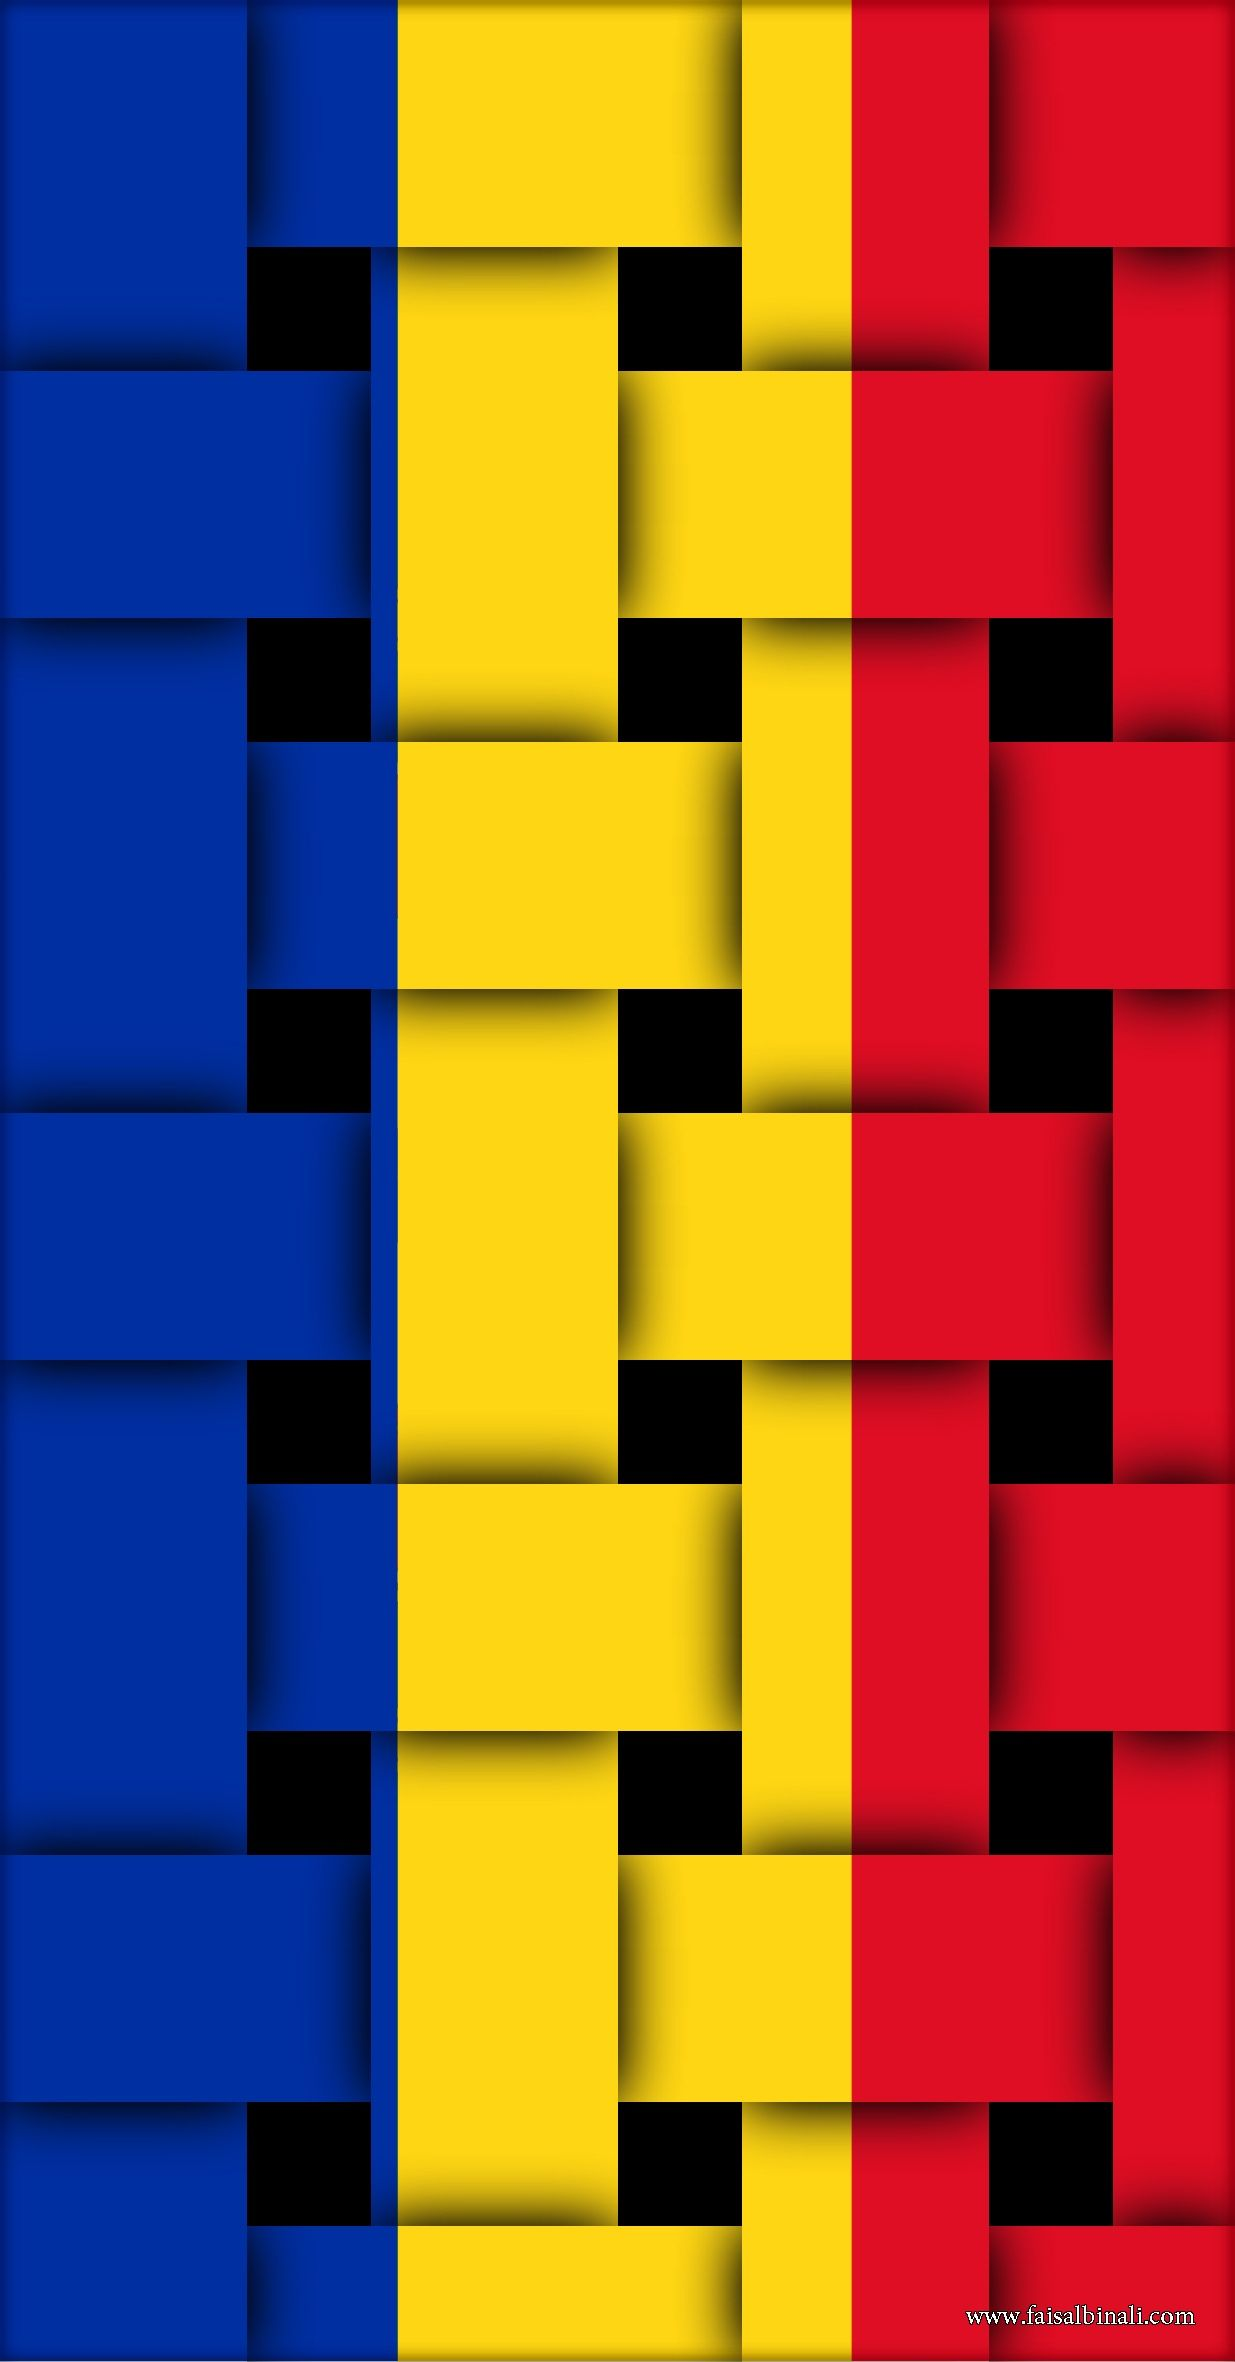 Romania Flags Artwork Wallpapers For Smartphones